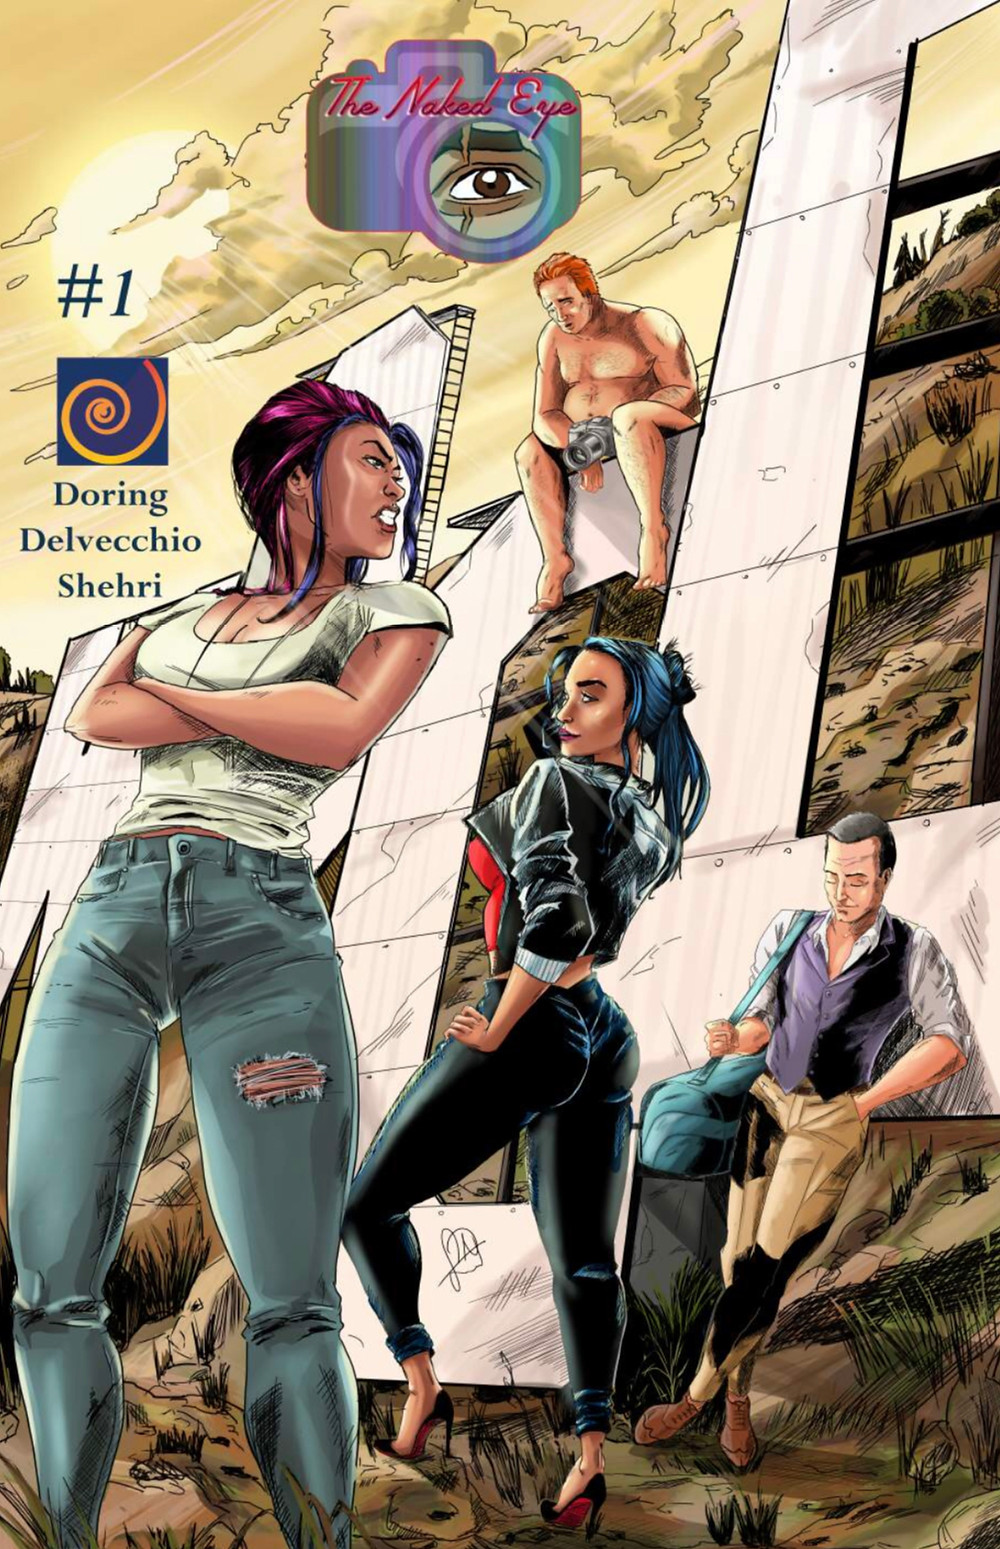 The Naked Eye, issue #1, cover, self-published, Doring/Delvecchio